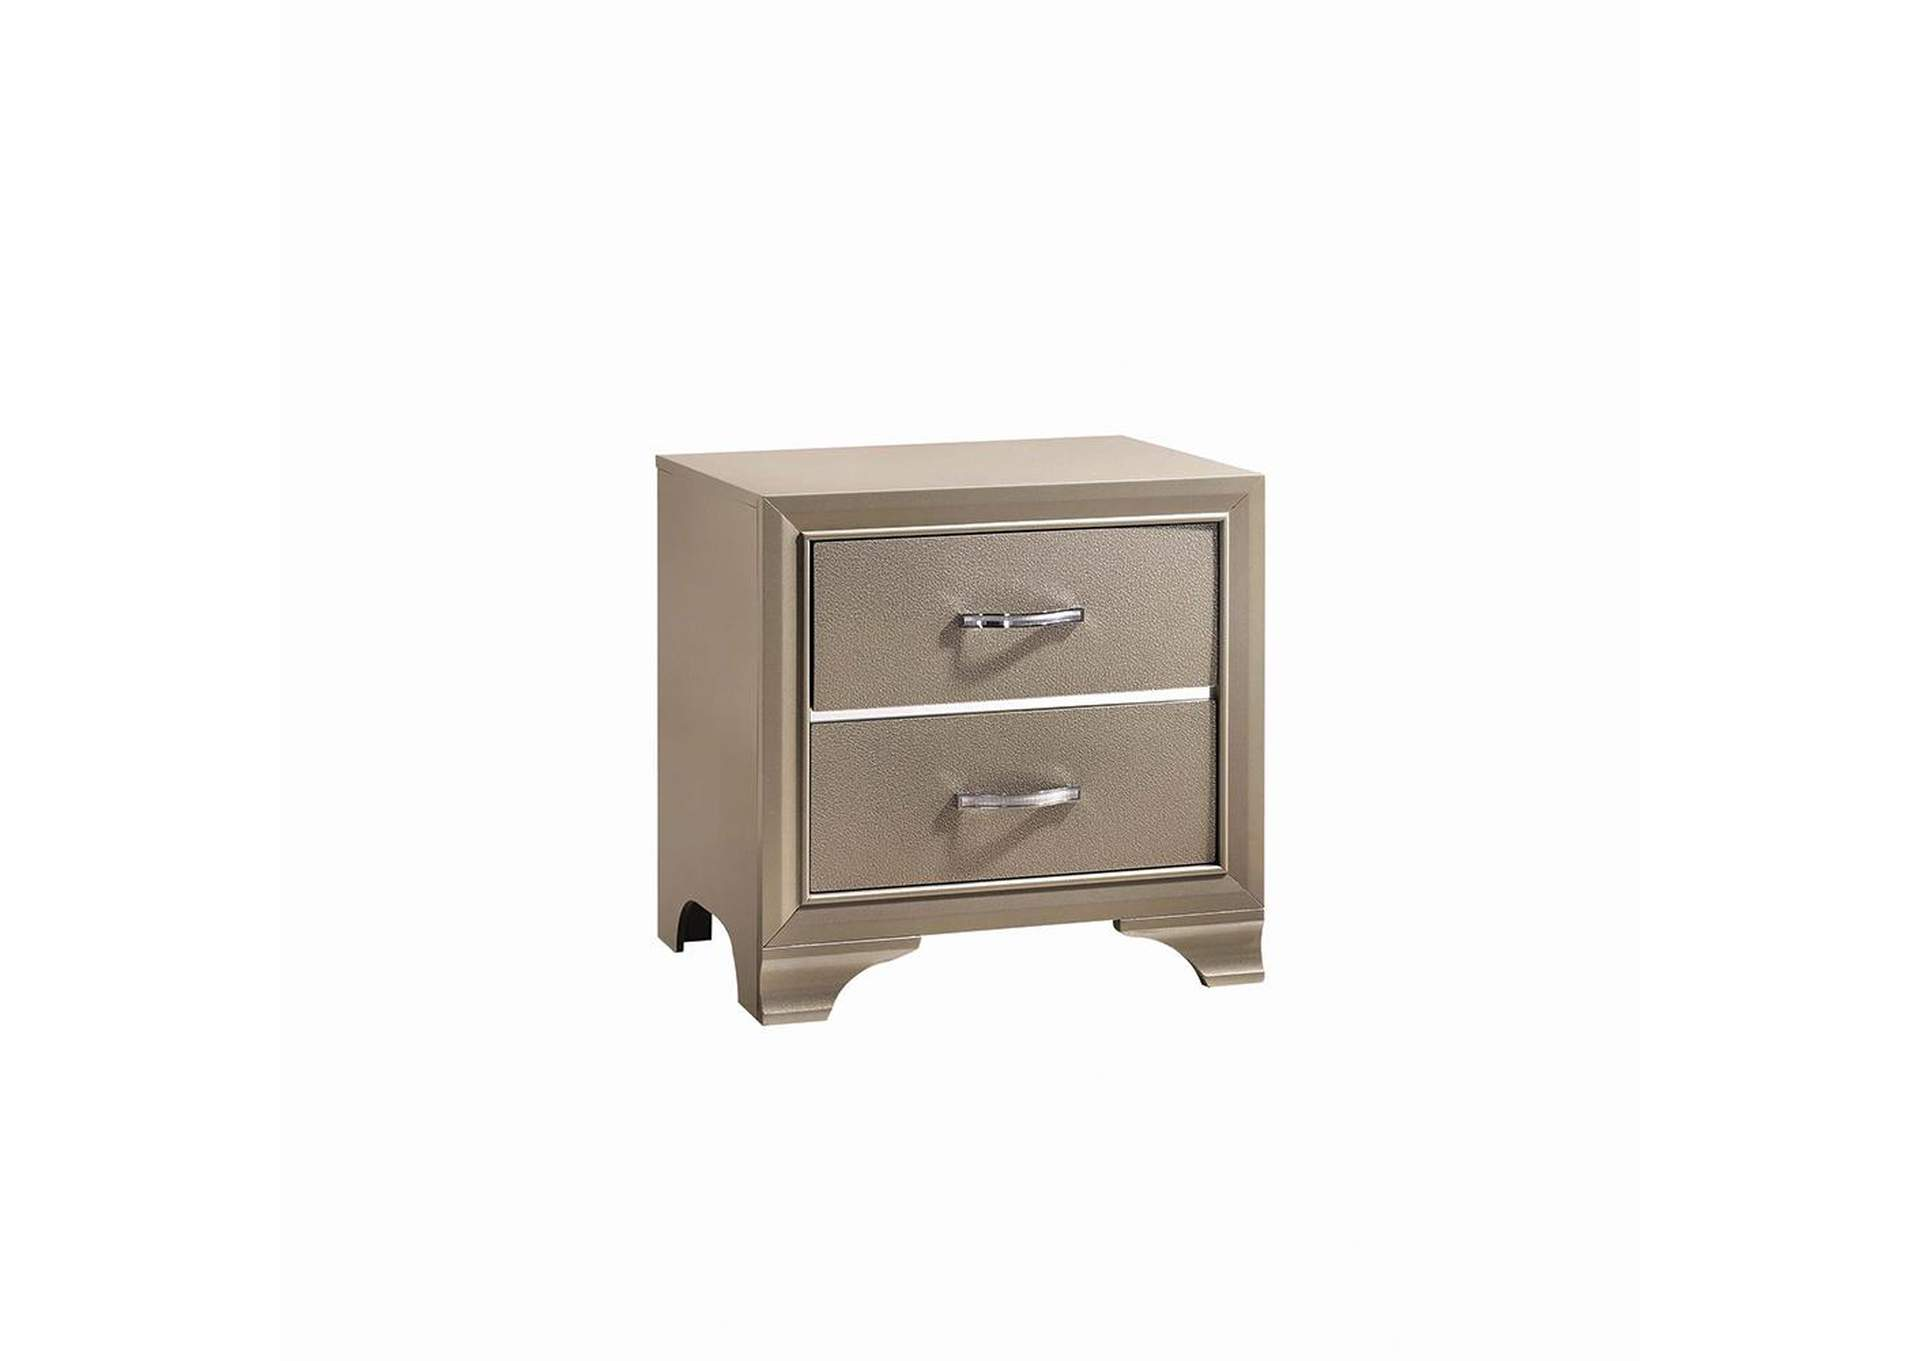 Champagne Nightstand,Coaster Furniture